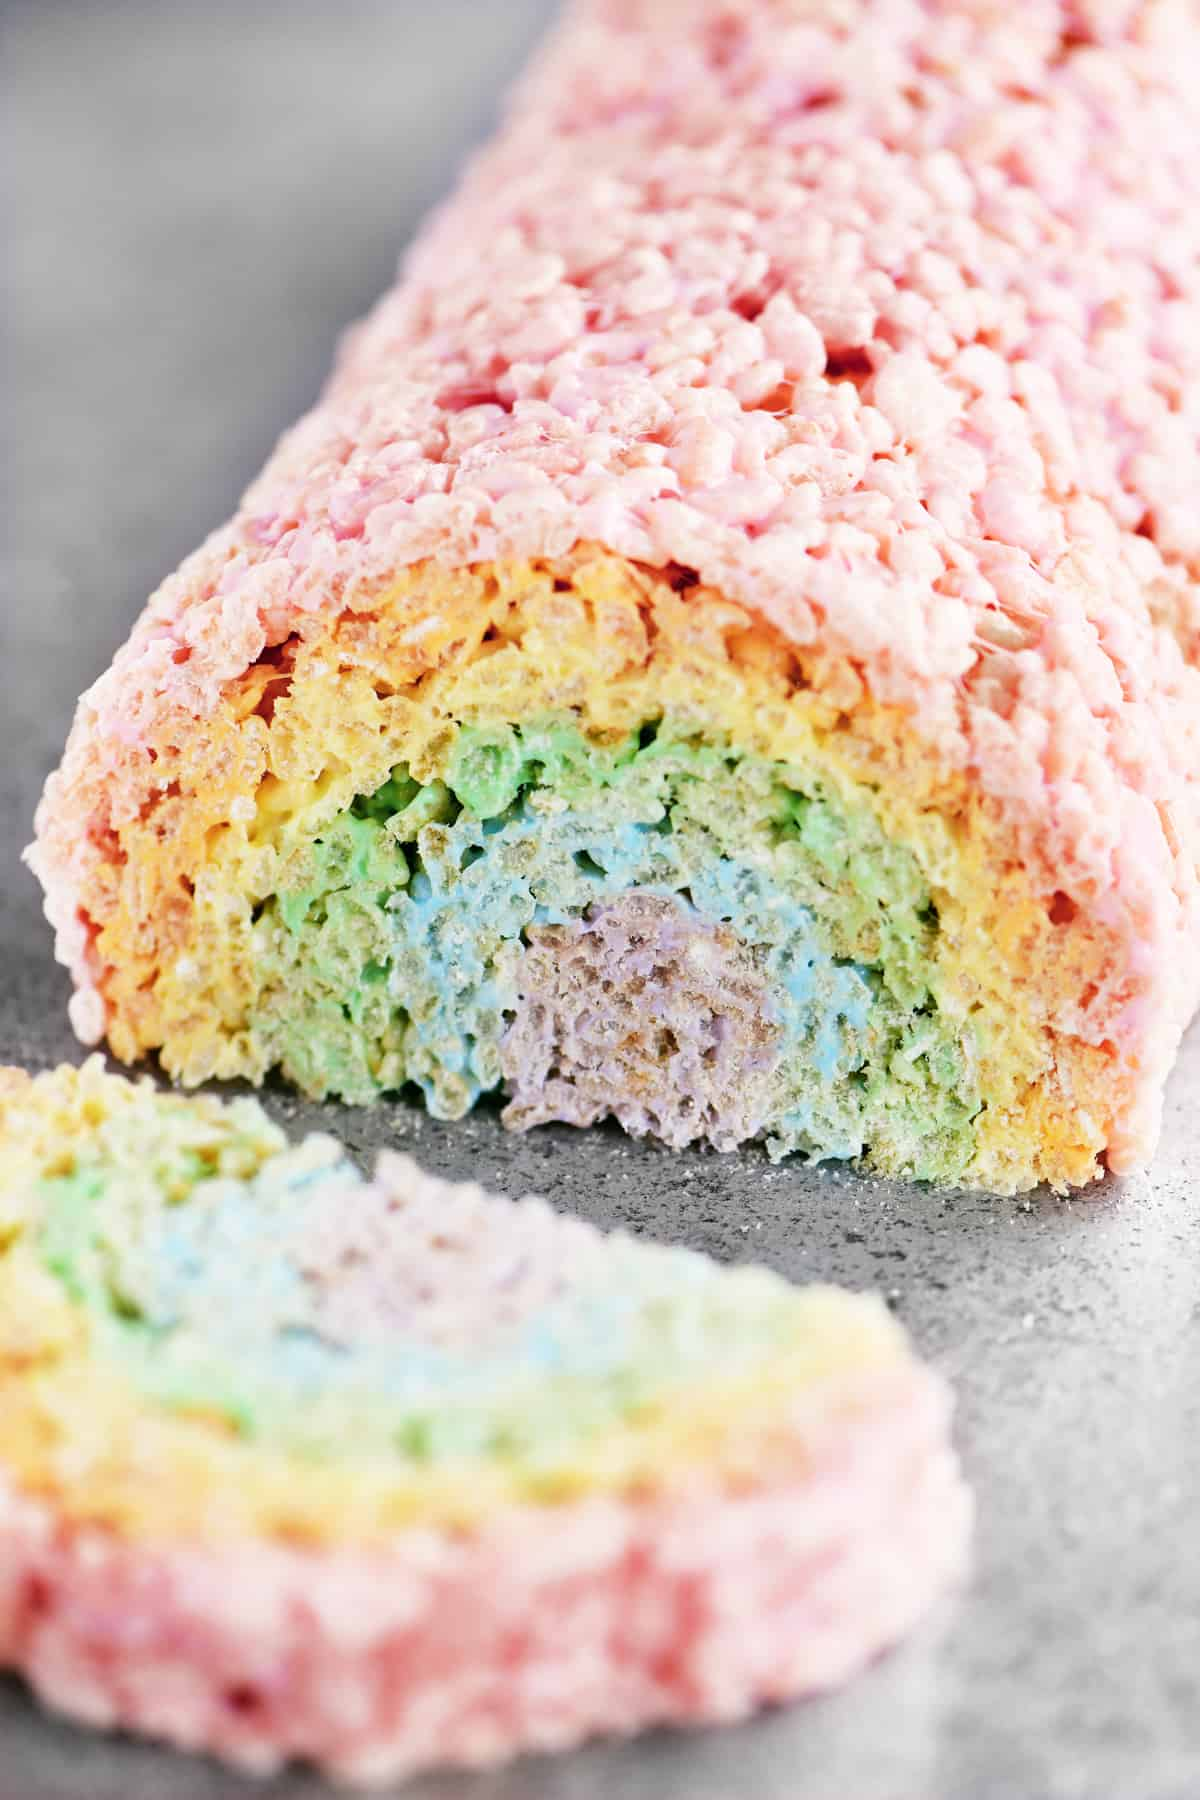 a slice of rainbow rice krispie treats laying next to the roll it was cut off of